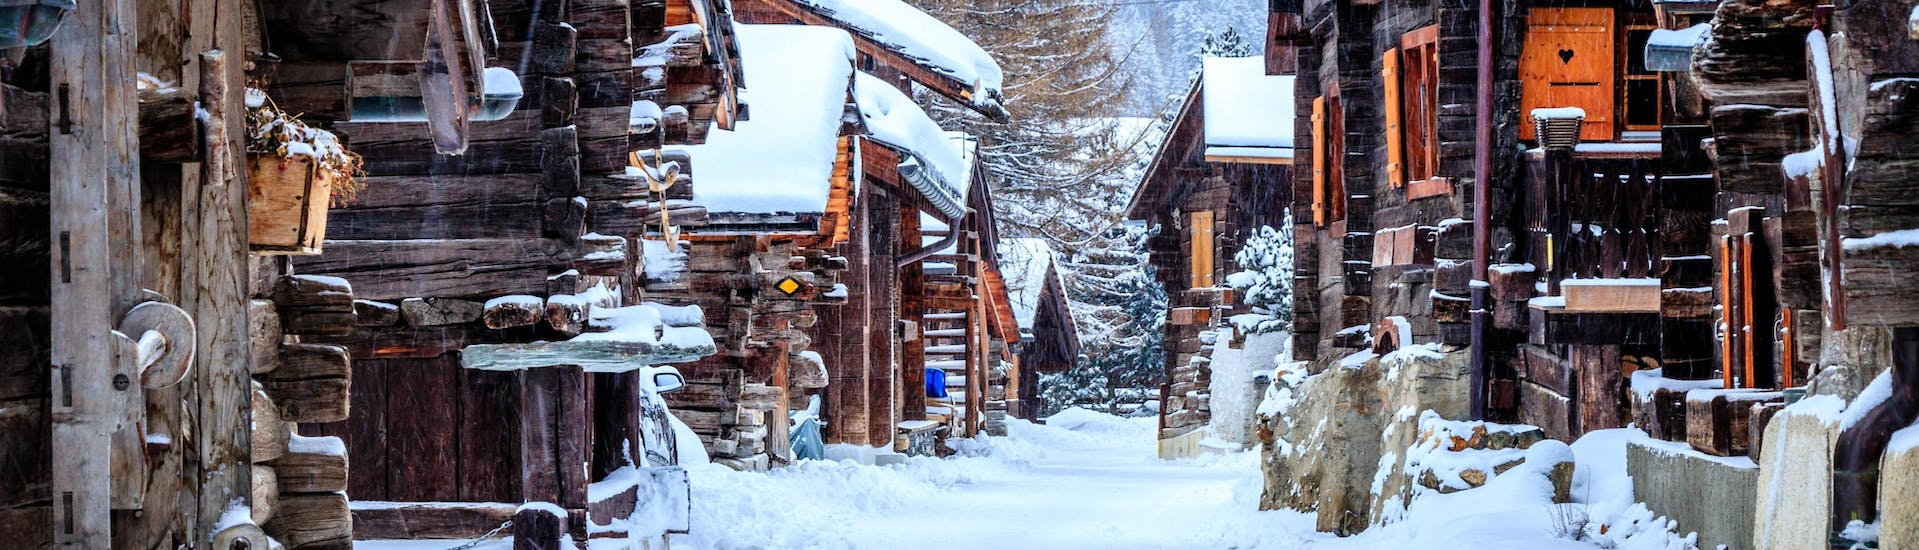 An image of the wooden chalets in the small Swiss village of Grimnetz, a popular destination for skiers who want to book ski lessons with one of the local ski schools.